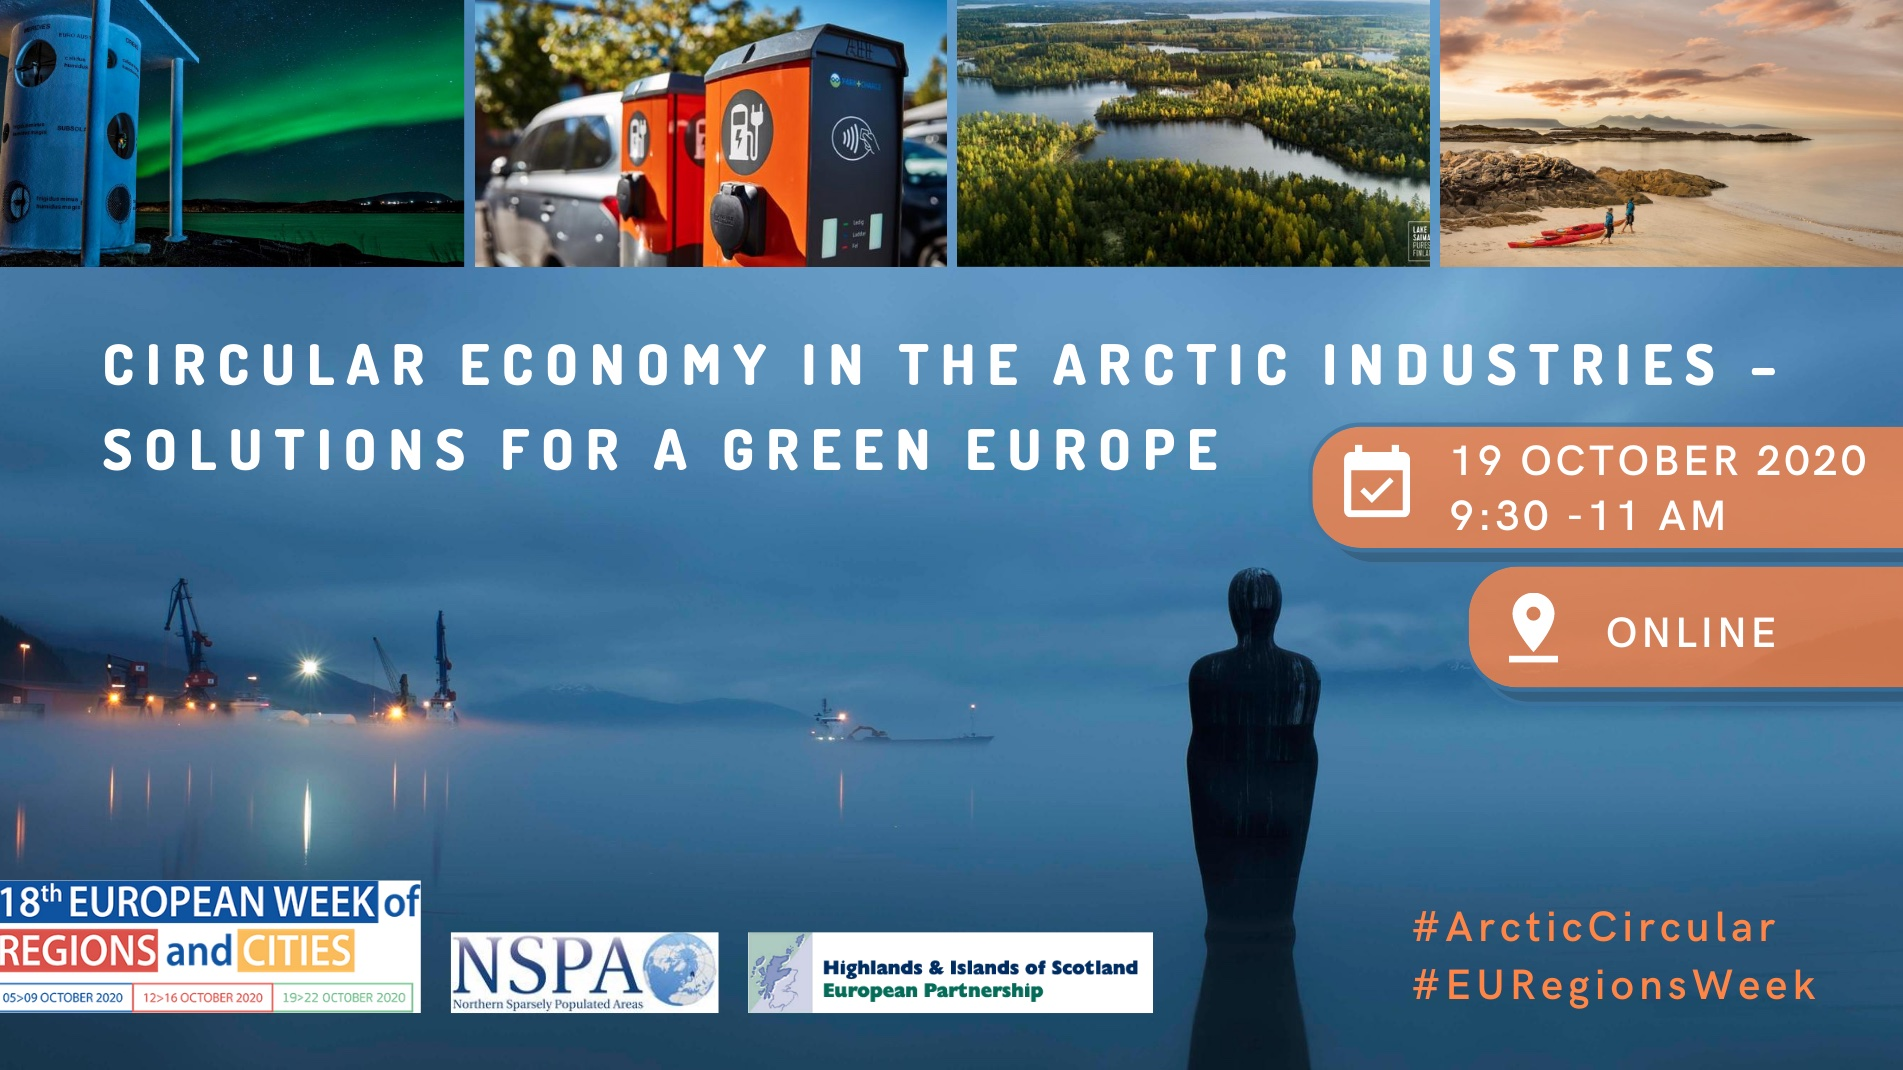 Circular economy in the Artic industries: Solutions for a green Europe